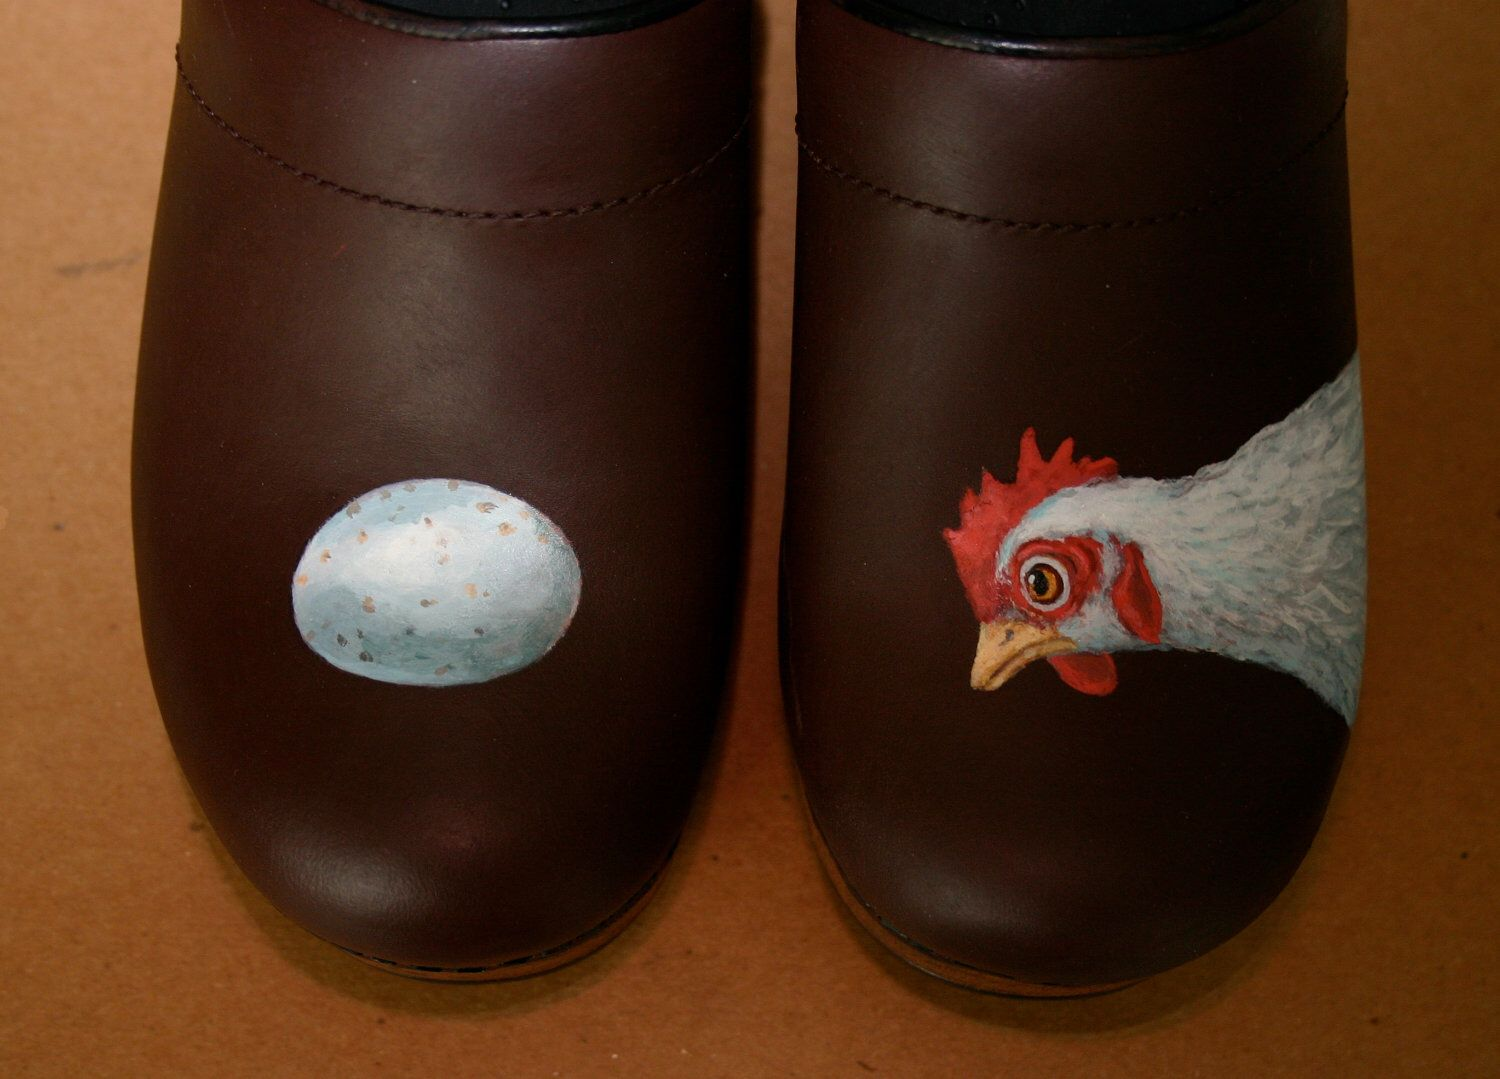 Ships In 2 To 3 Days Chicken Walk Size 37 I Supply The Dansko Clog By Shoetrip On Etsy Https Www Etsy Com Listing 104391204 Clogs Painted Shoes Dansko Clogs